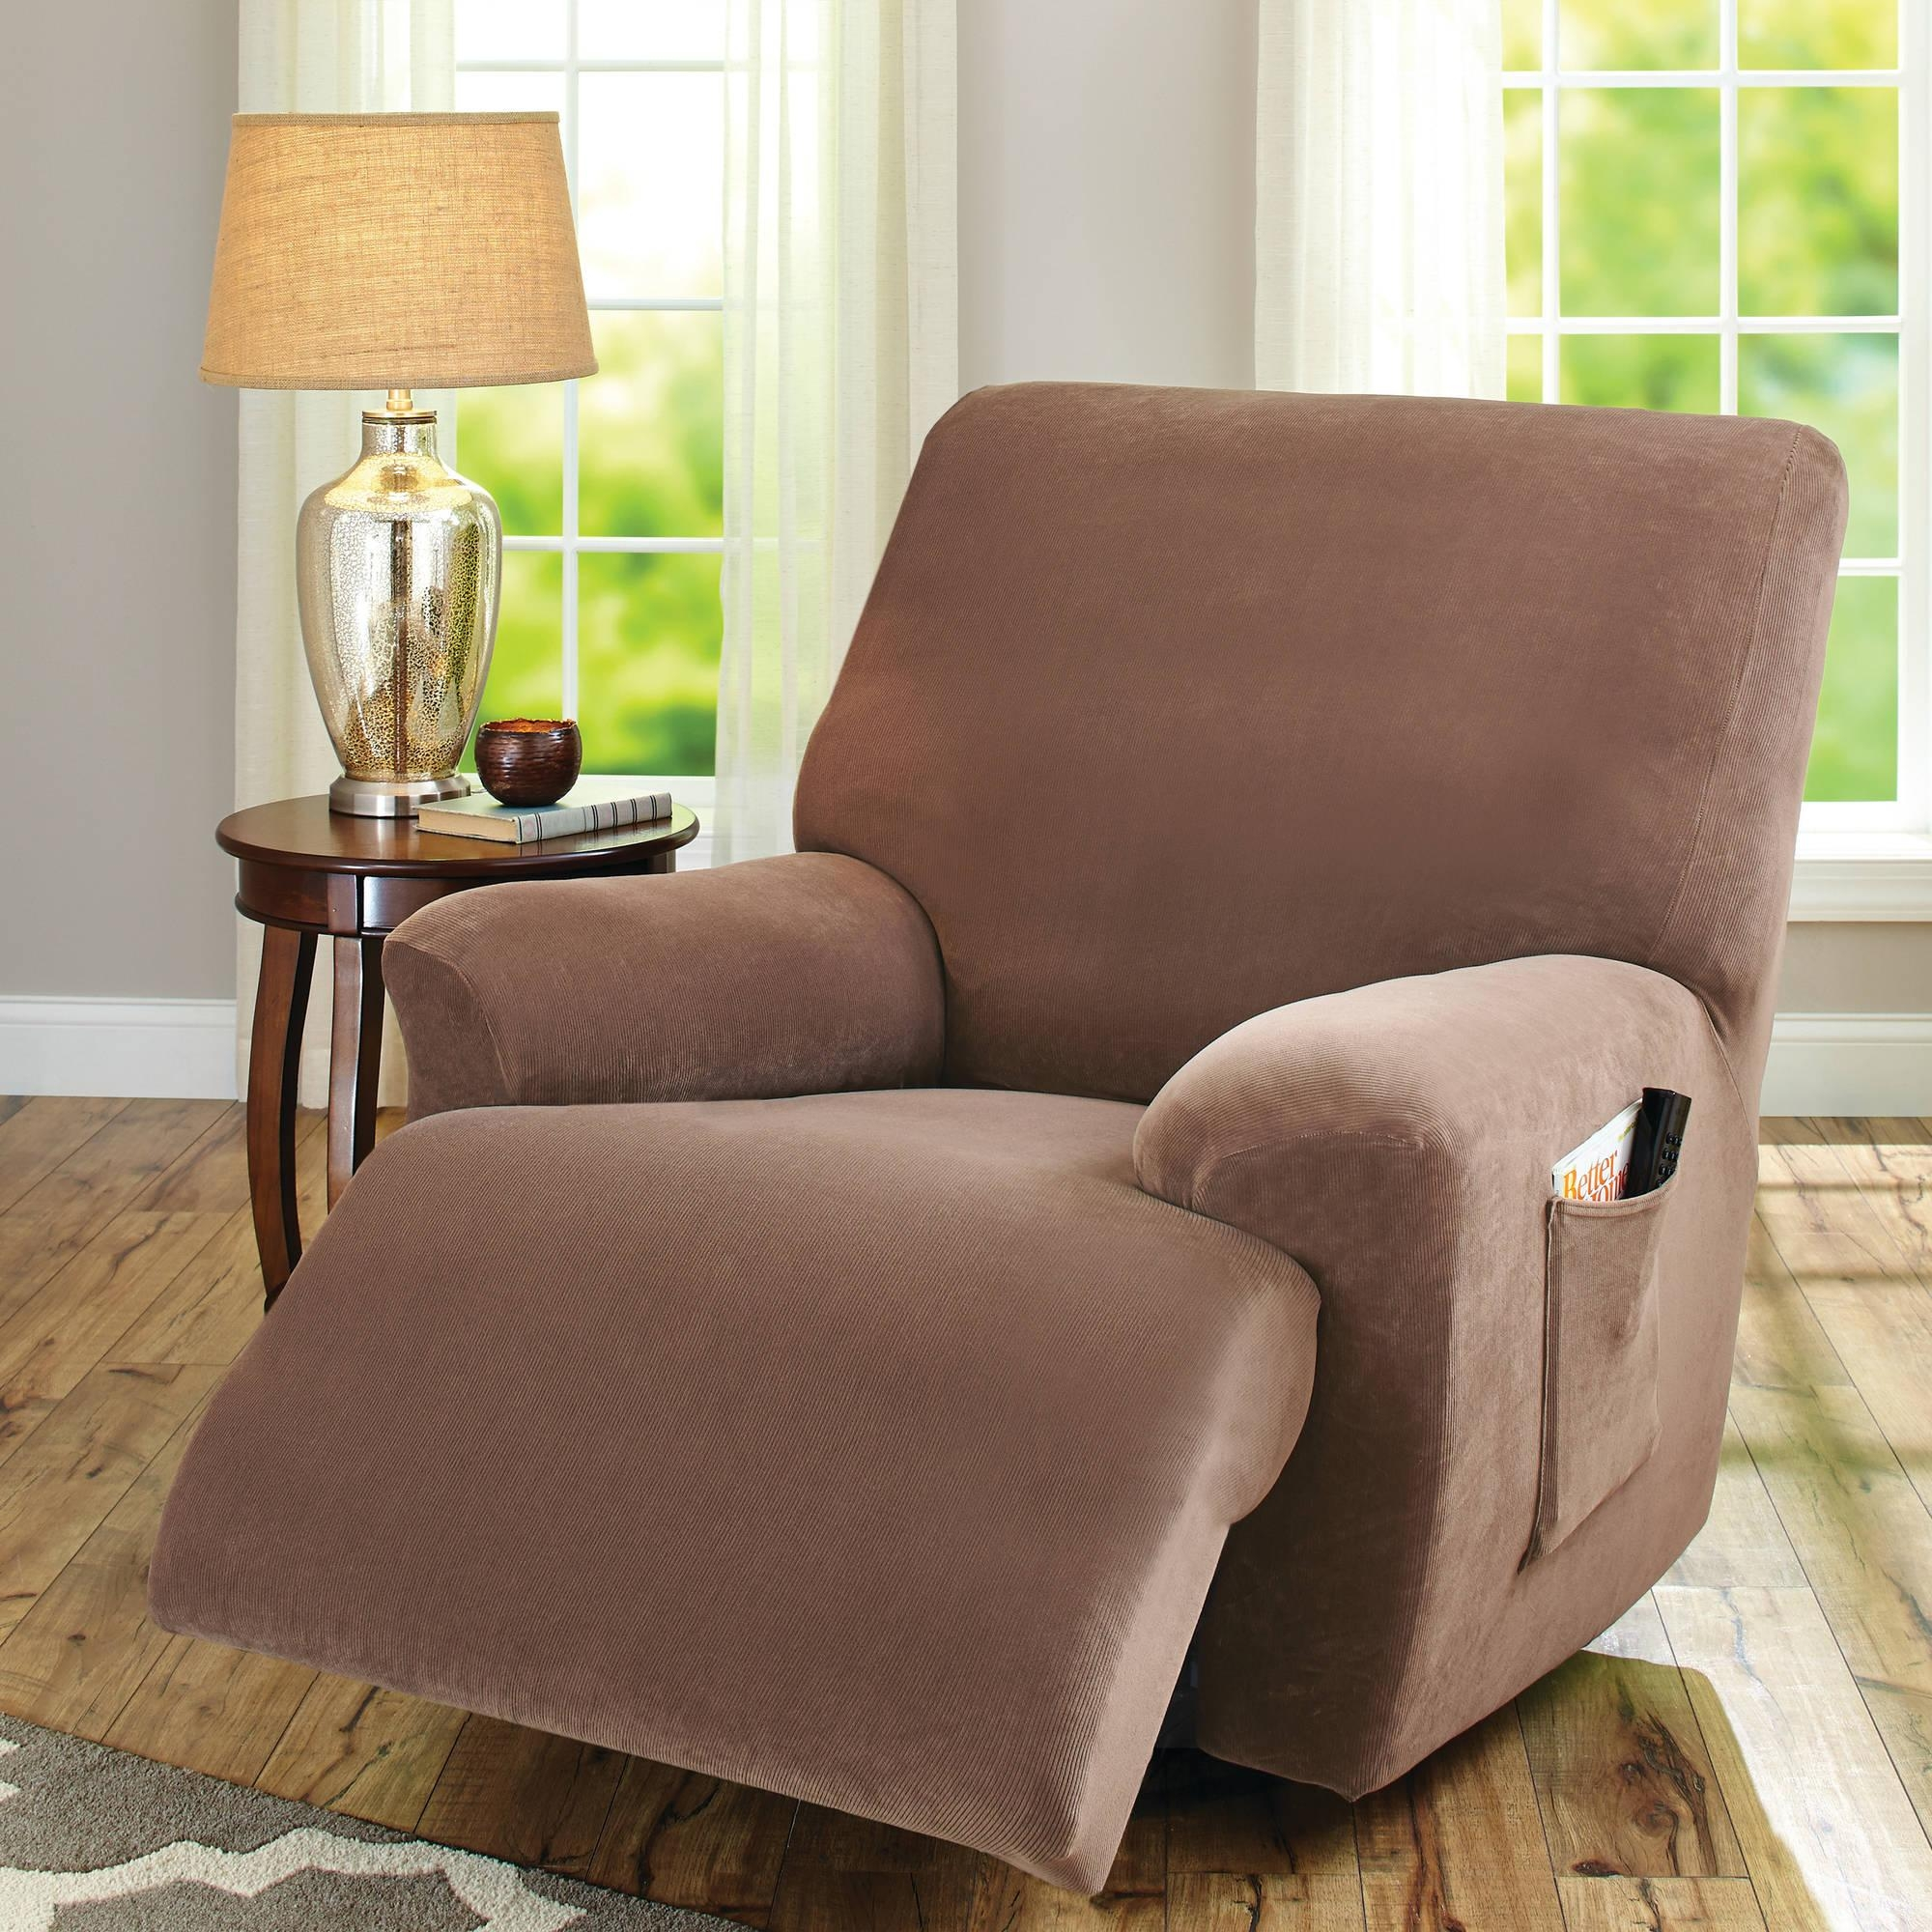 Sofas Center : Sure Fit Dual Reclining Sofa Couch Slipcover Throughout Slipcover For Recliner Sofas (View 16 of 20)